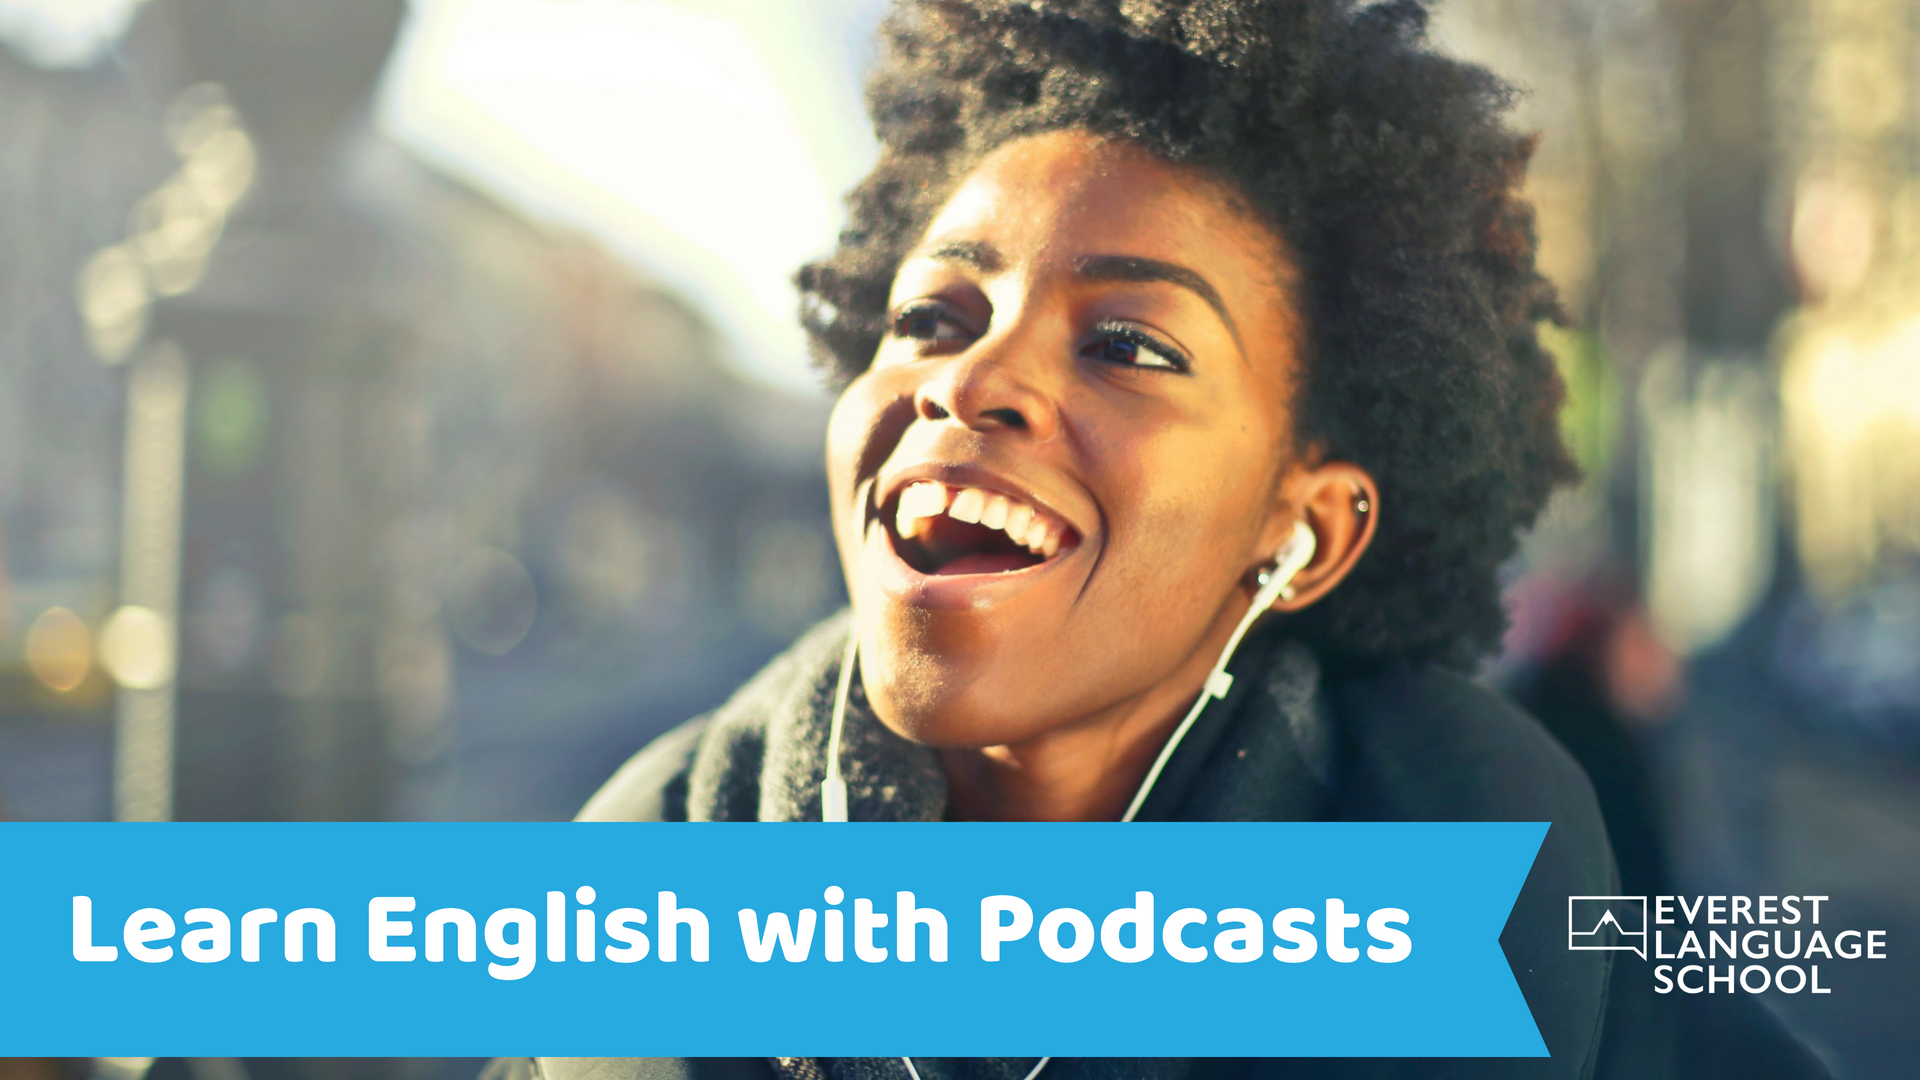 Podcasts for learning English